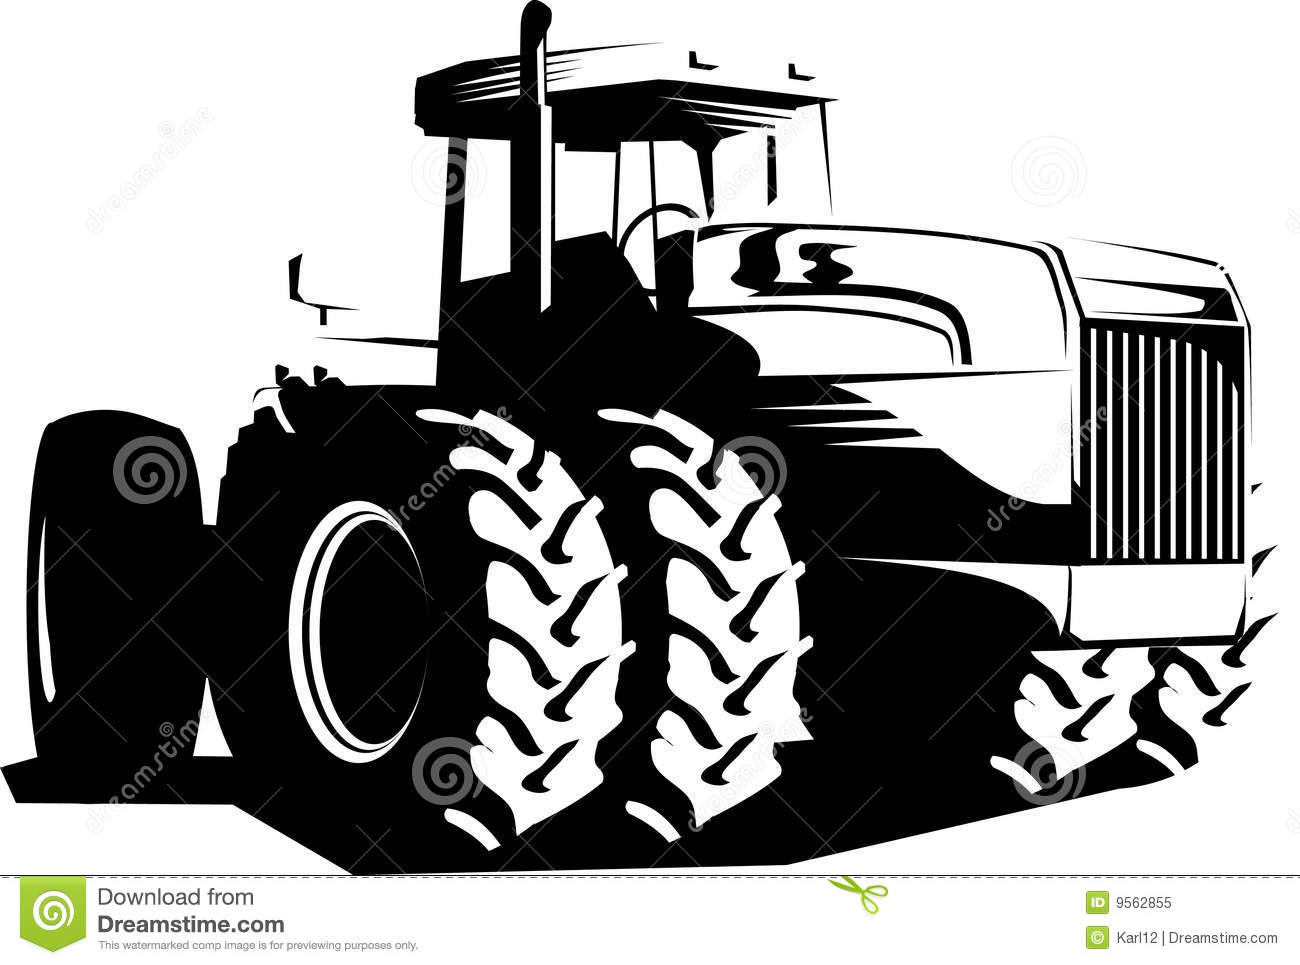 Wheeled Tractor Black And White Stock Vector - Image: 9562855